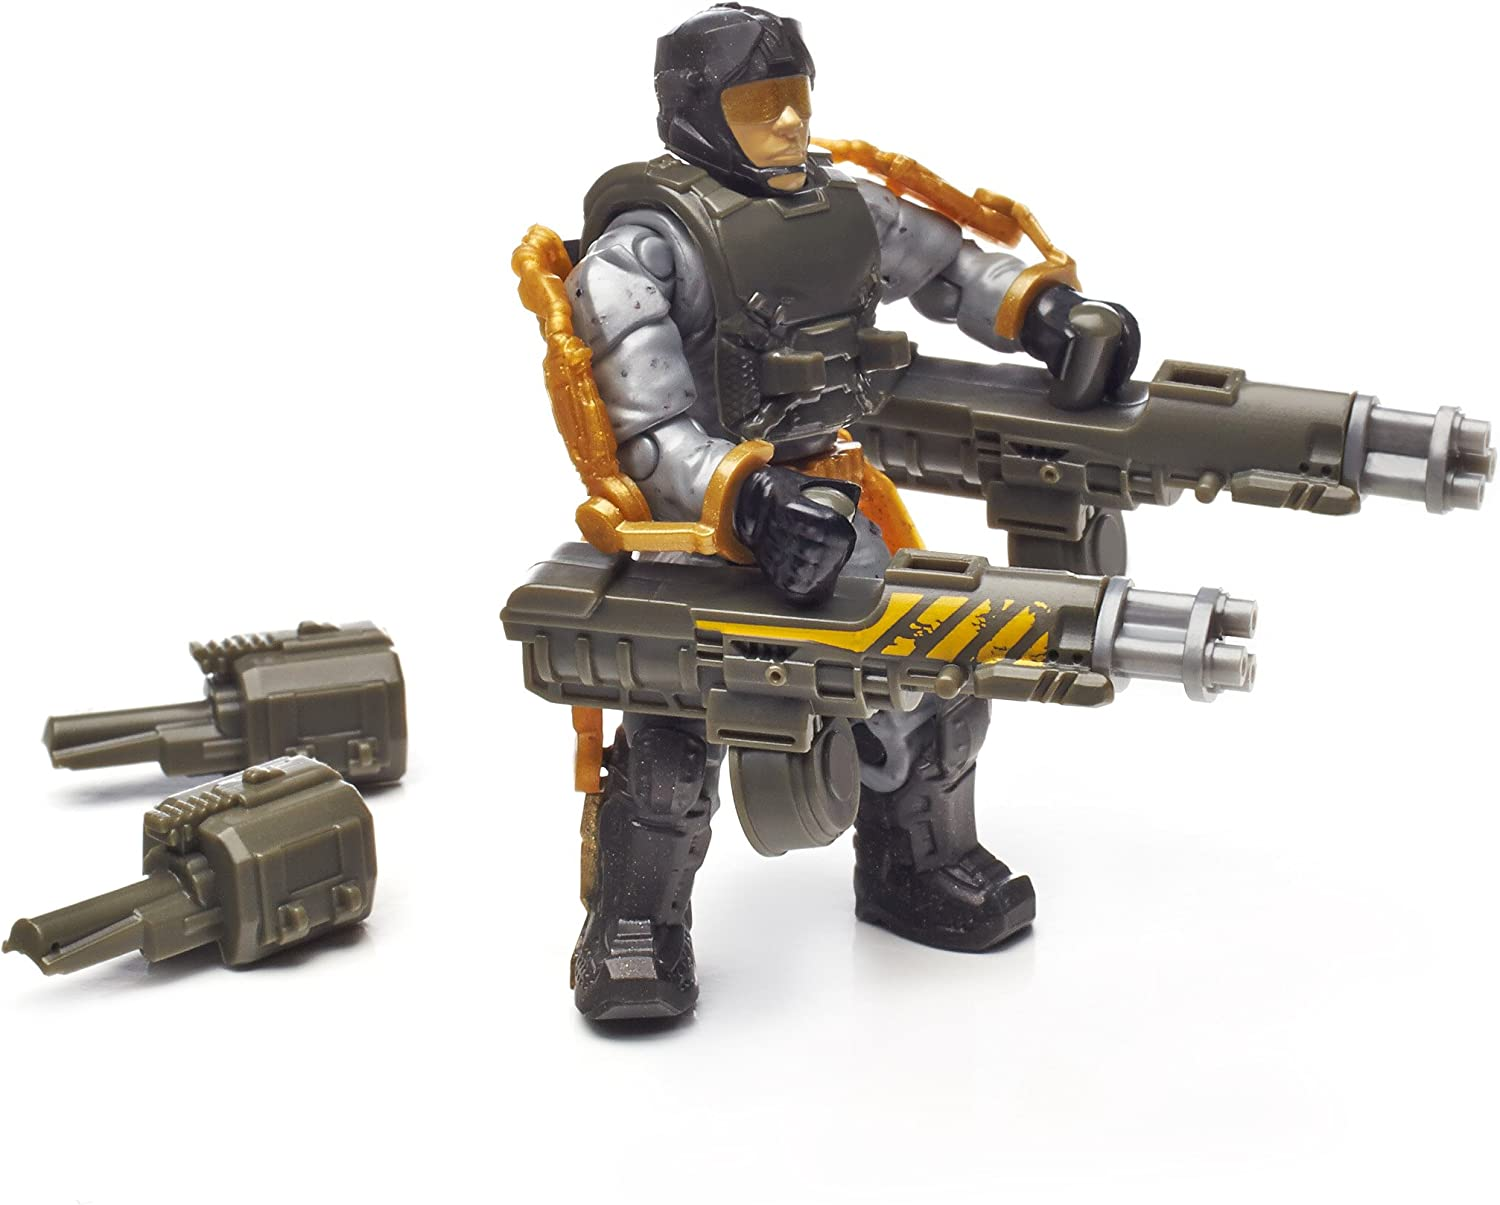 Mega Bloks Call of Duty Collector Series Series Series Advanced Enforcer Building Set 8520ac